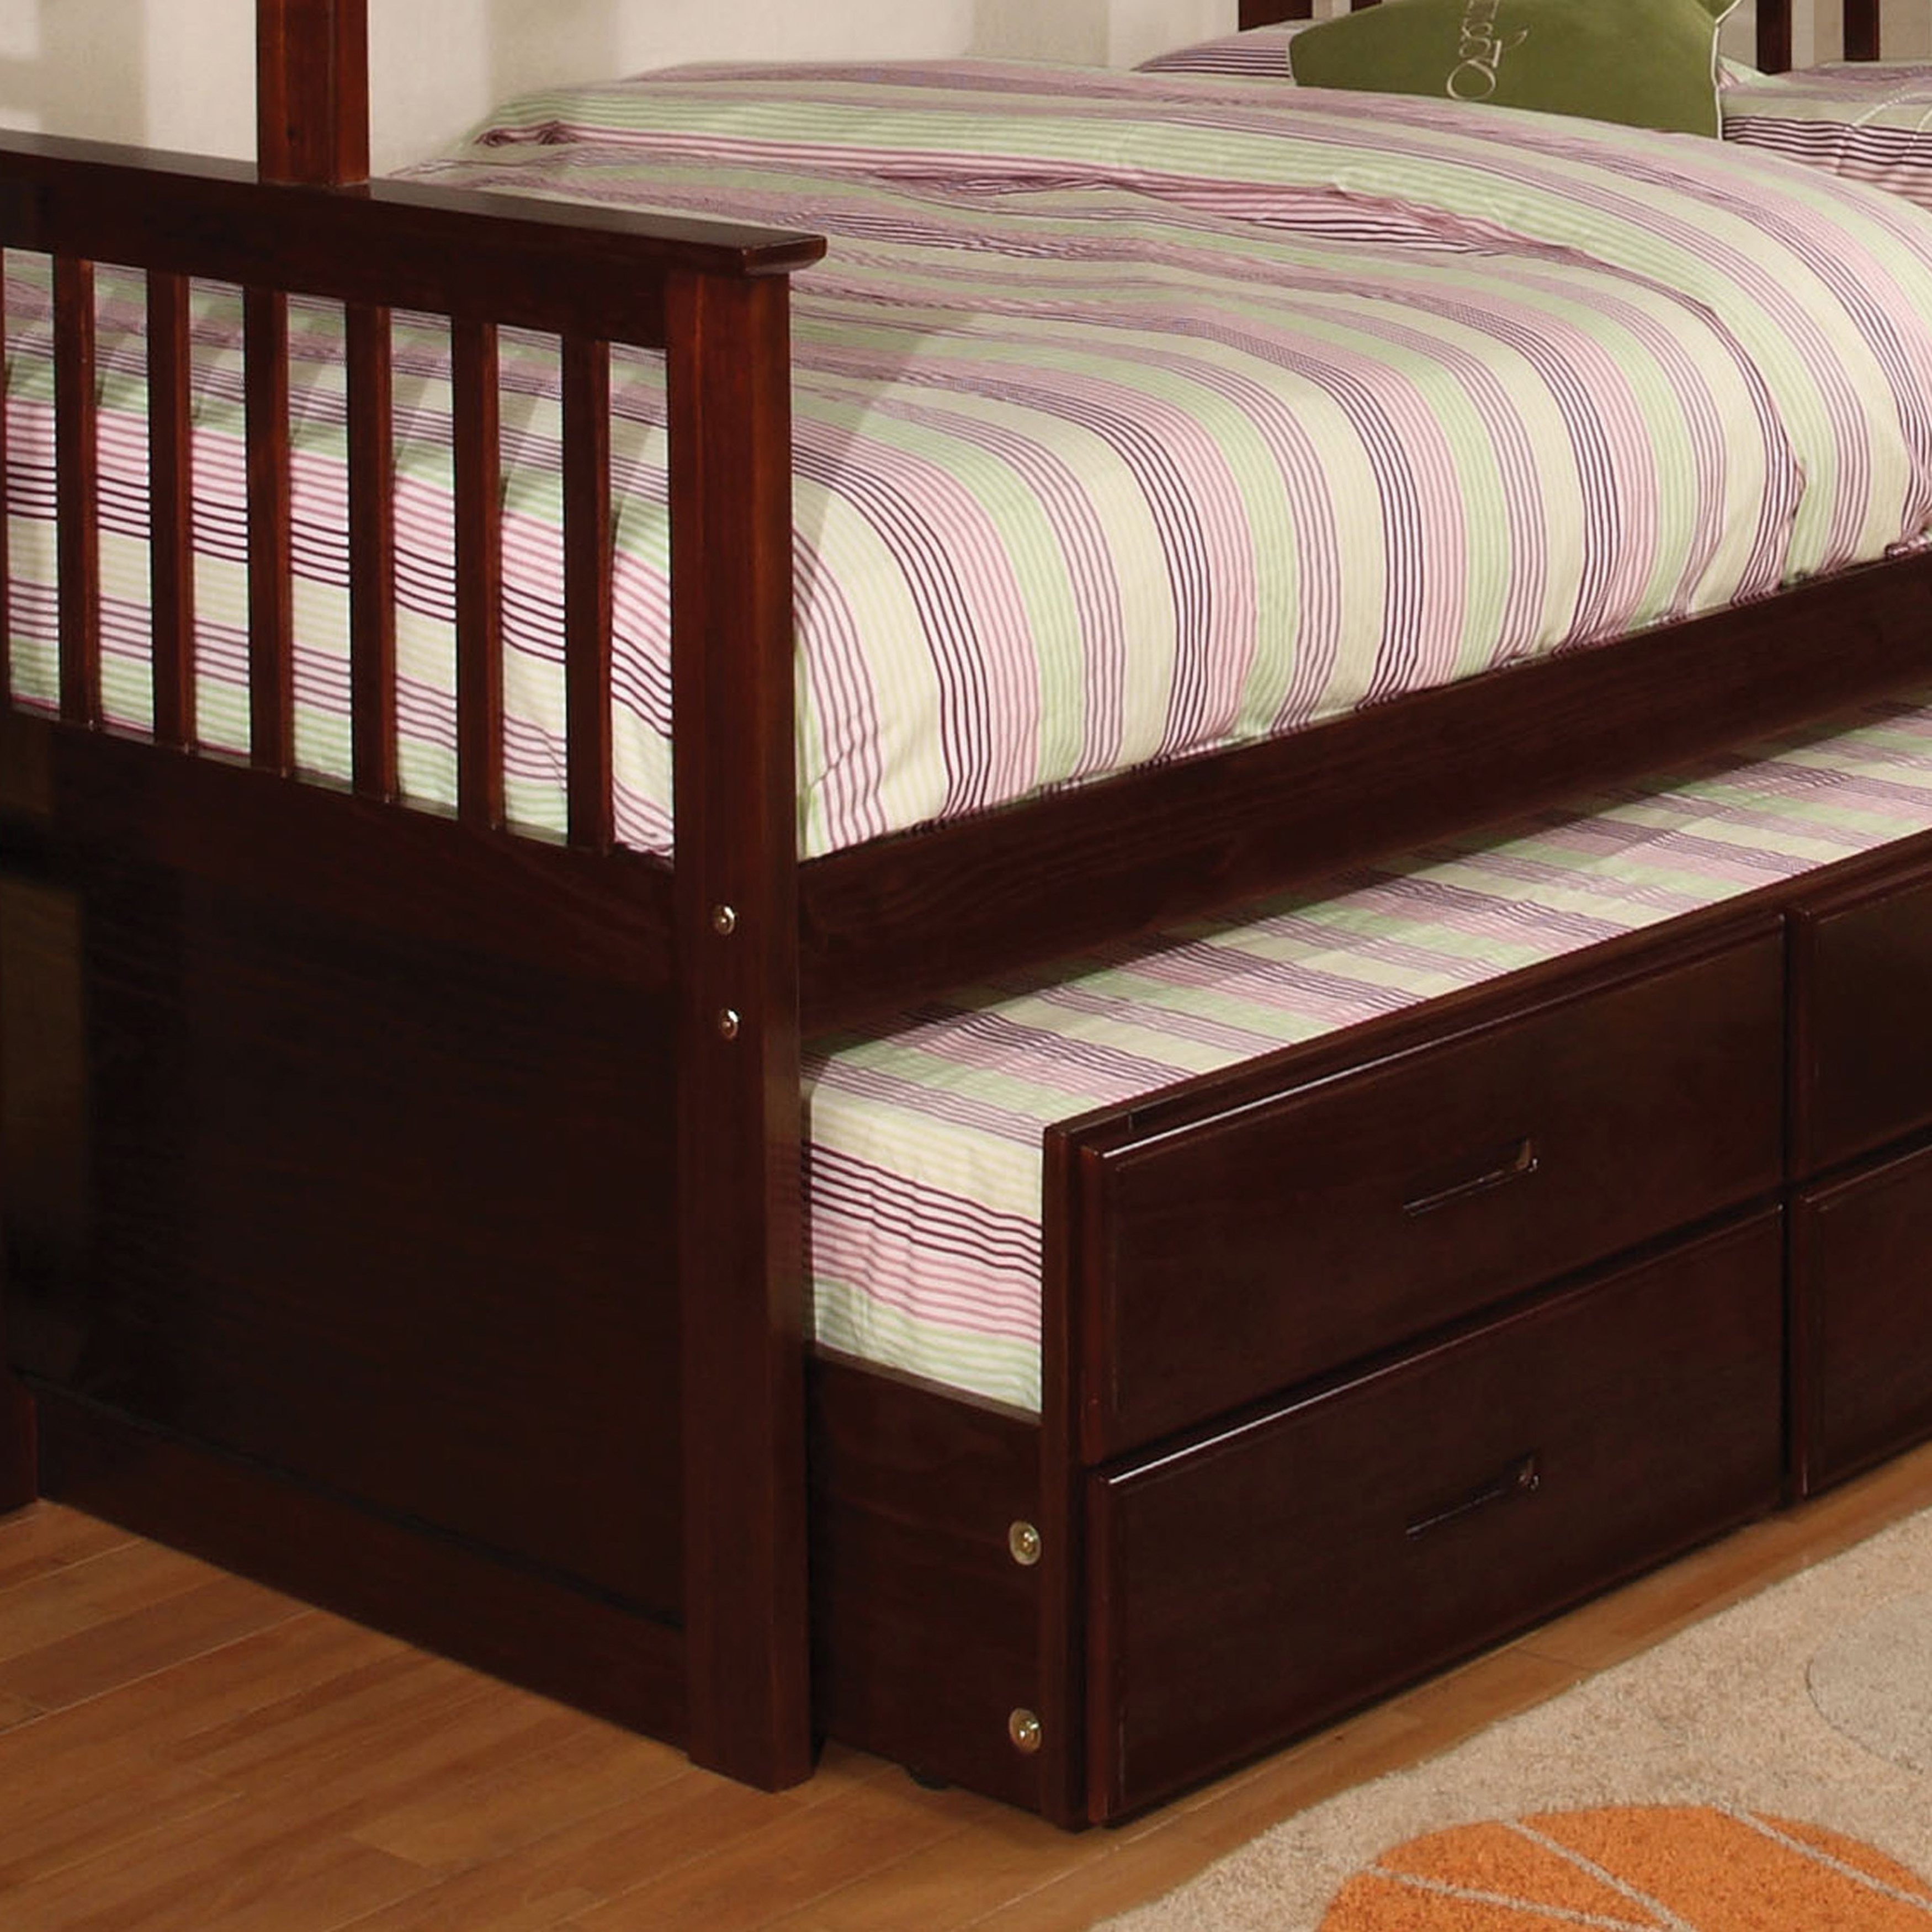 Furniture Of America Rola Mission Twin Xl Queen Bunk Bed With Trundle Overstock 10302777